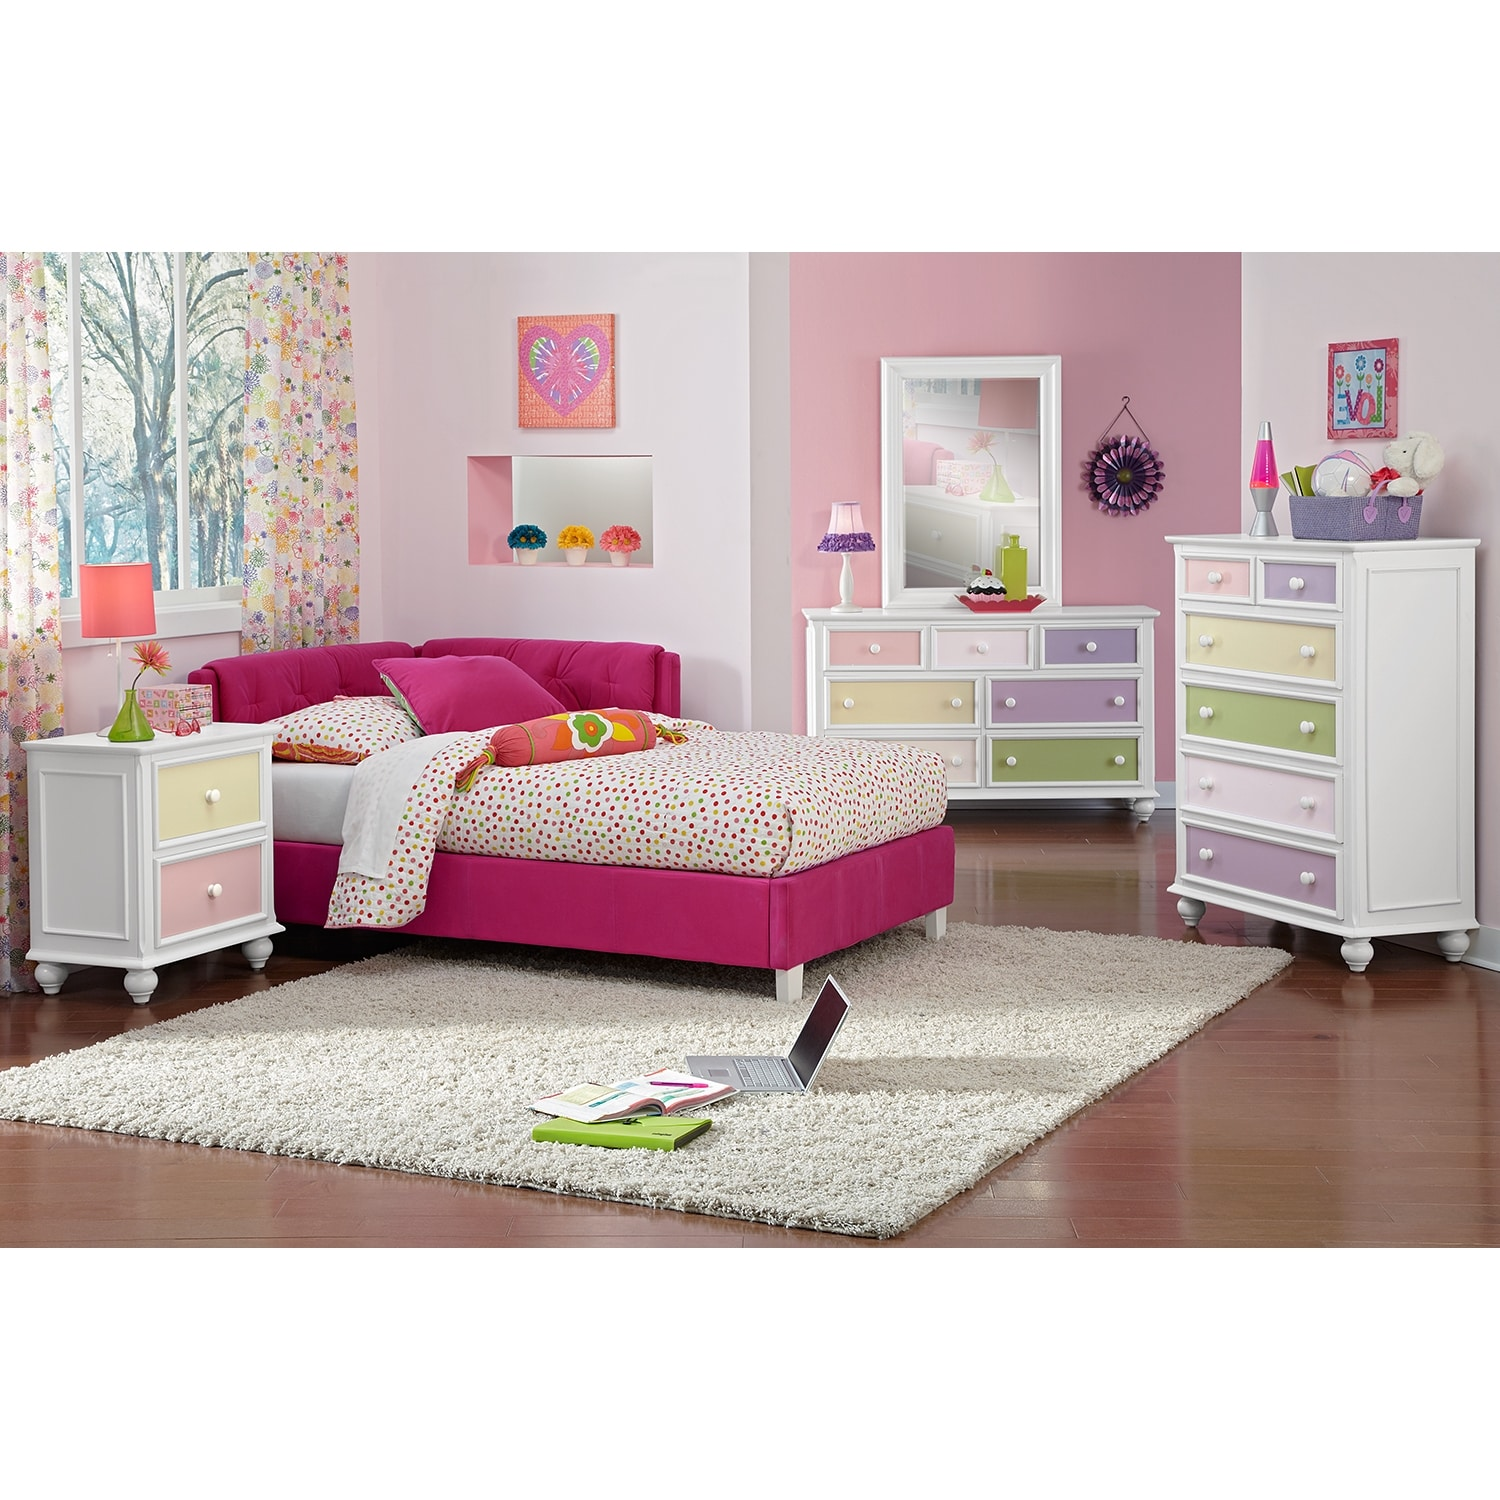 diy set twin bed beds how corner space to saving